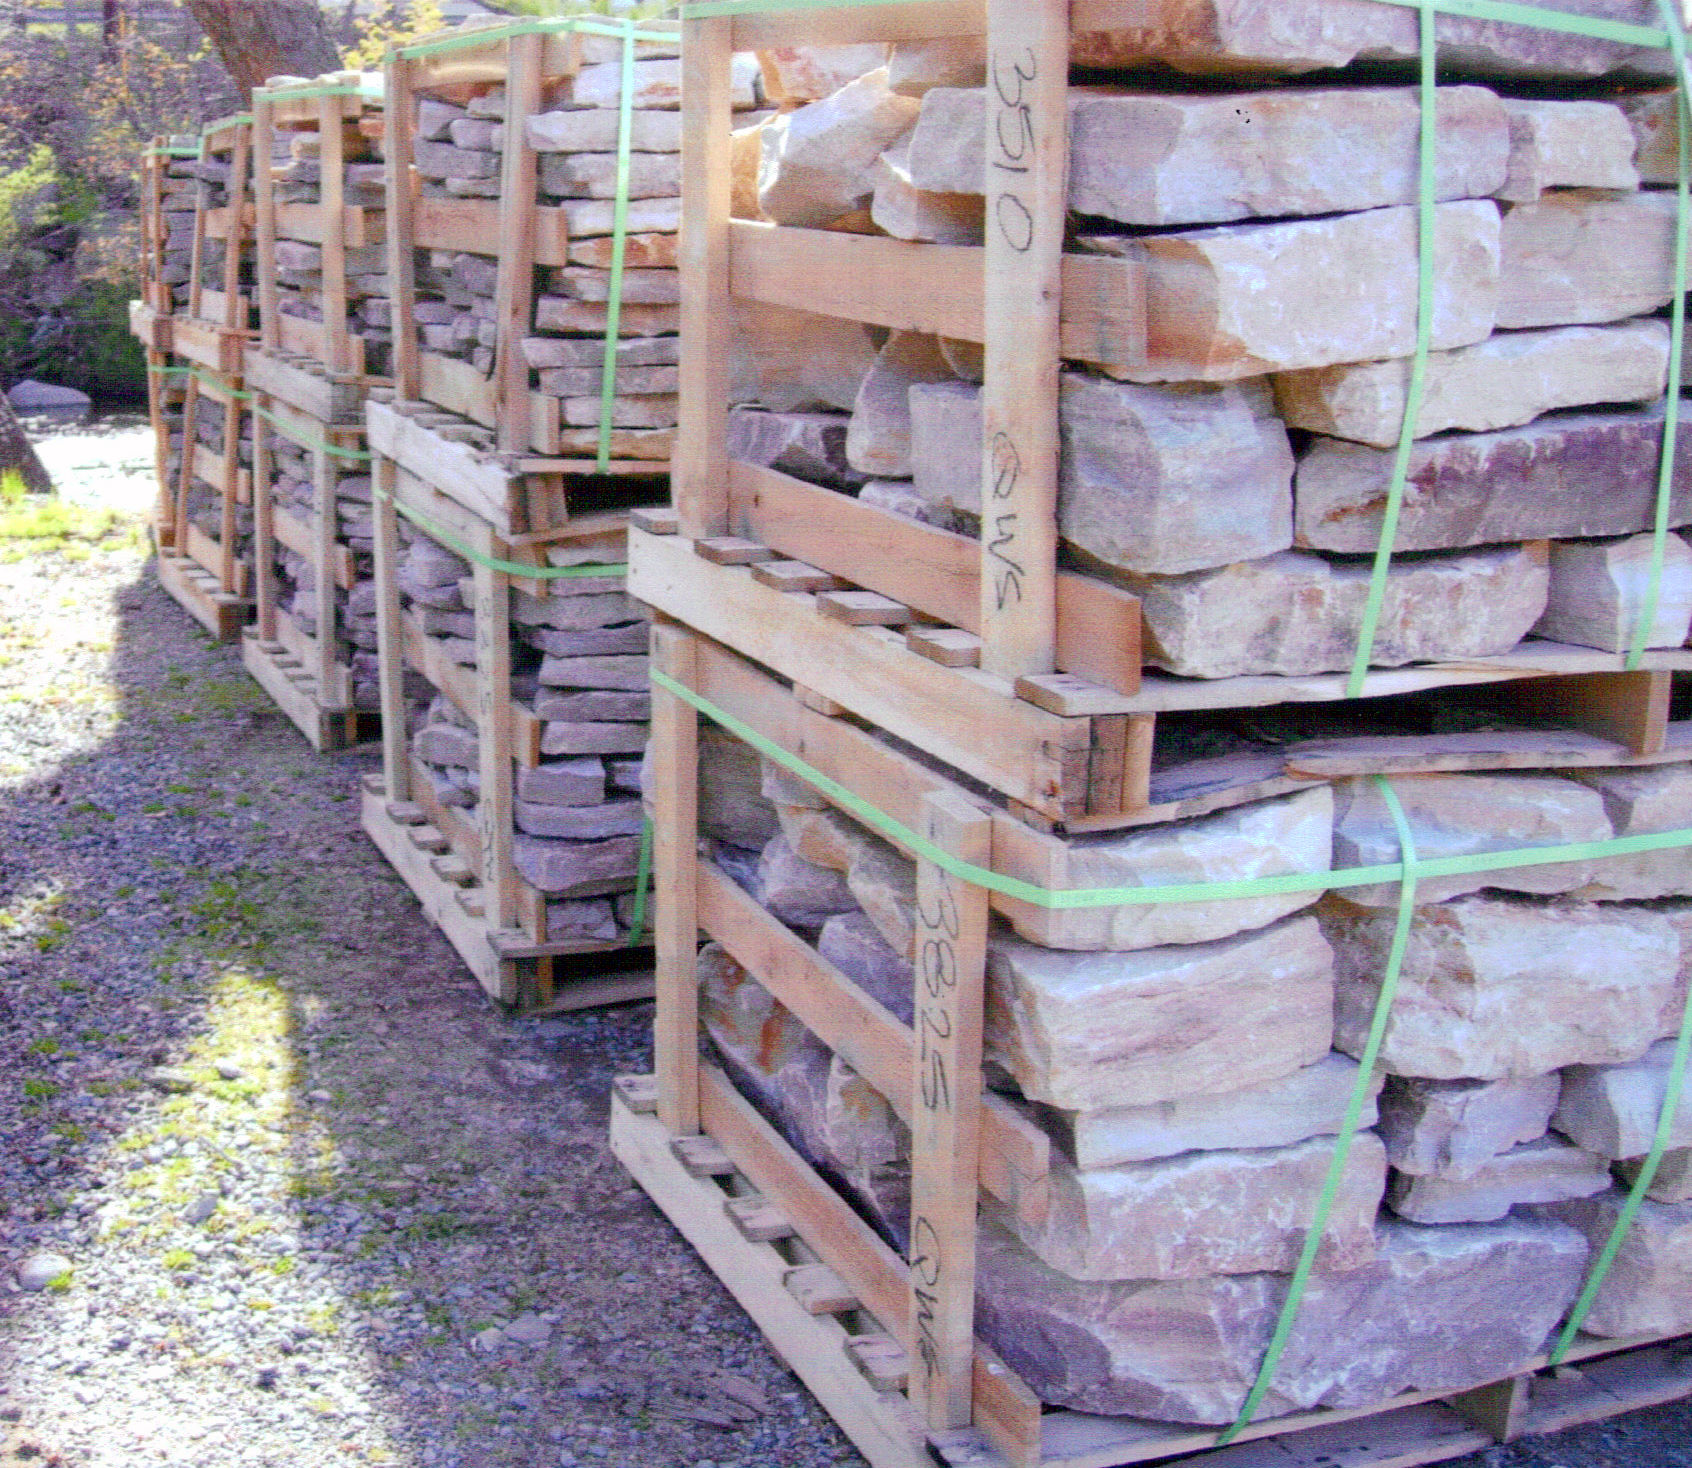 stacked-pallets.jpg